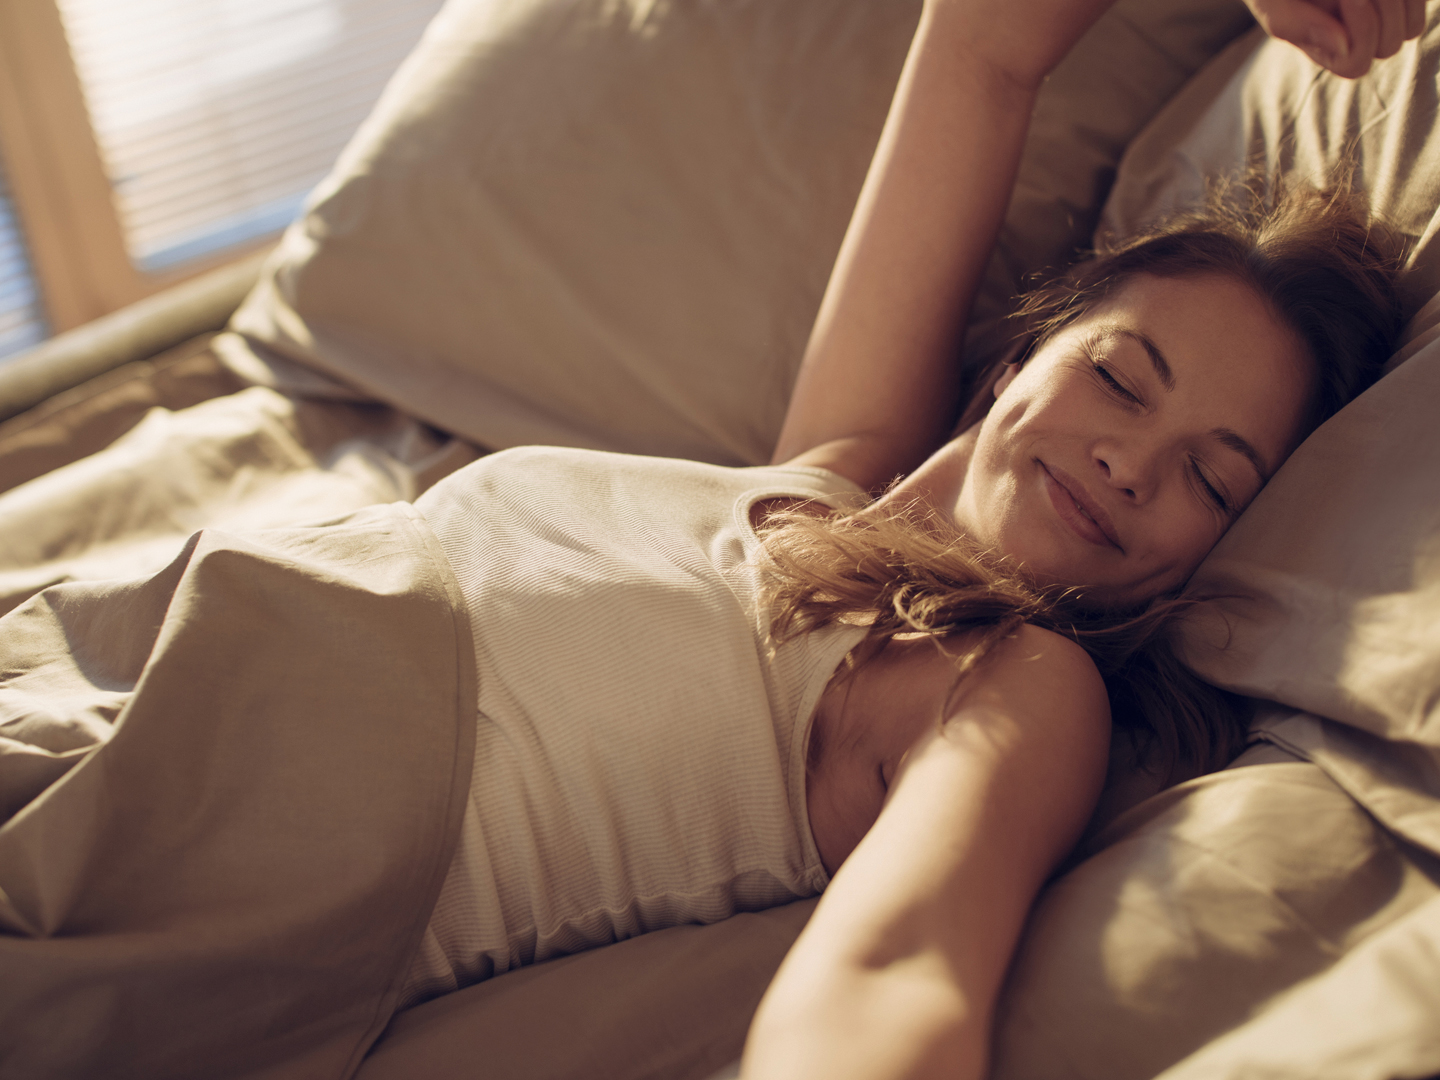 Picture Of A Woman Sleeping In Bed